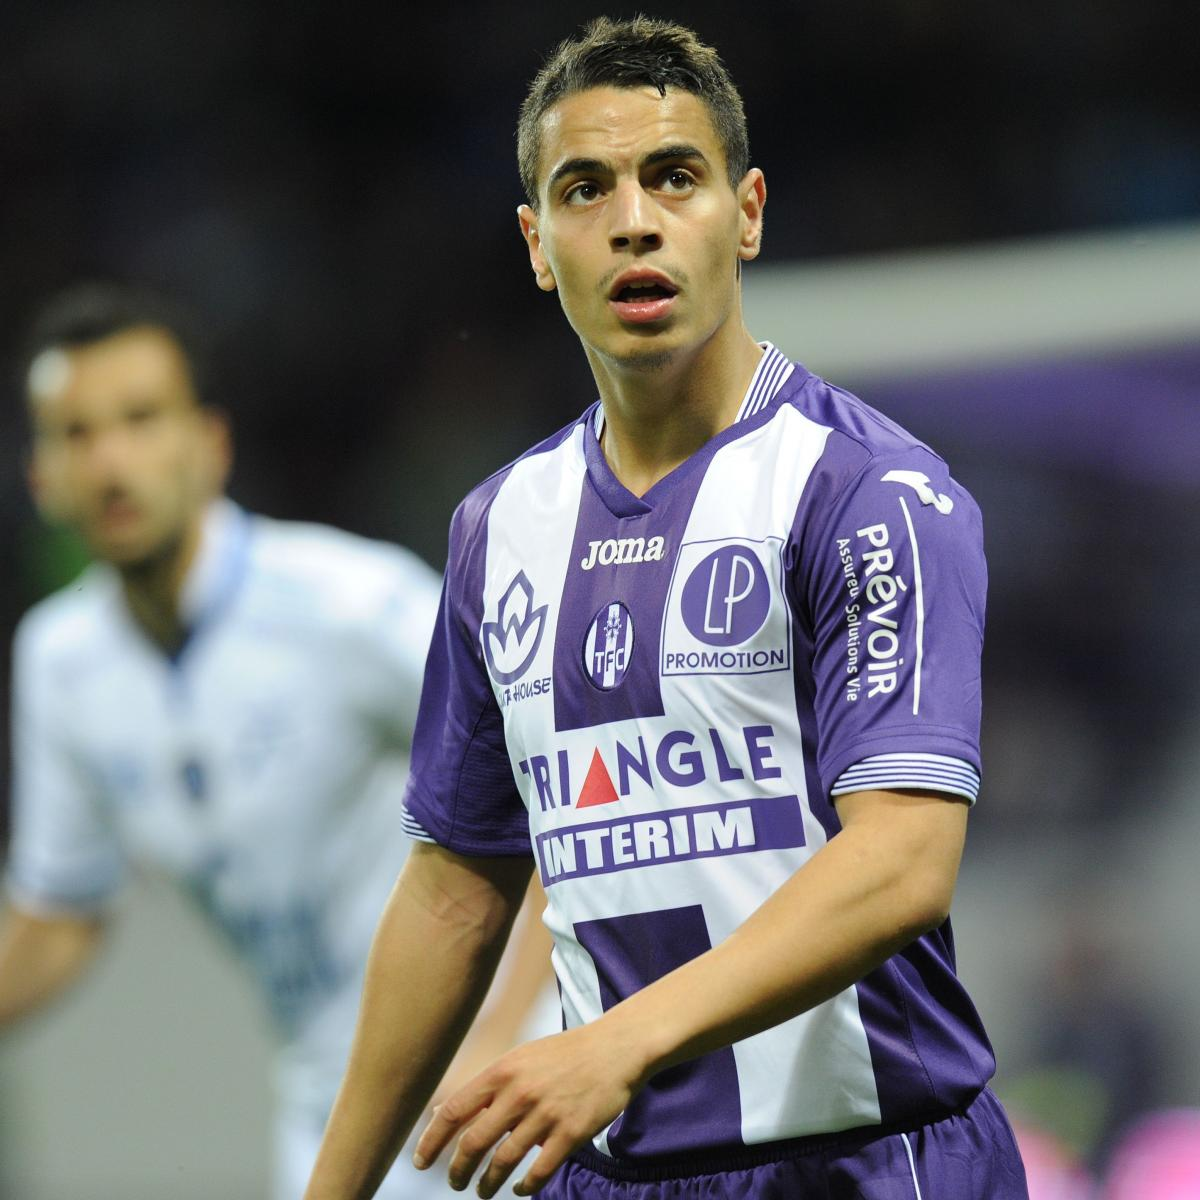 Reports Arsenal Were Ready To Sign Lucas: Arsenal Transfer News: Latest On Wissam Ben Yedder And